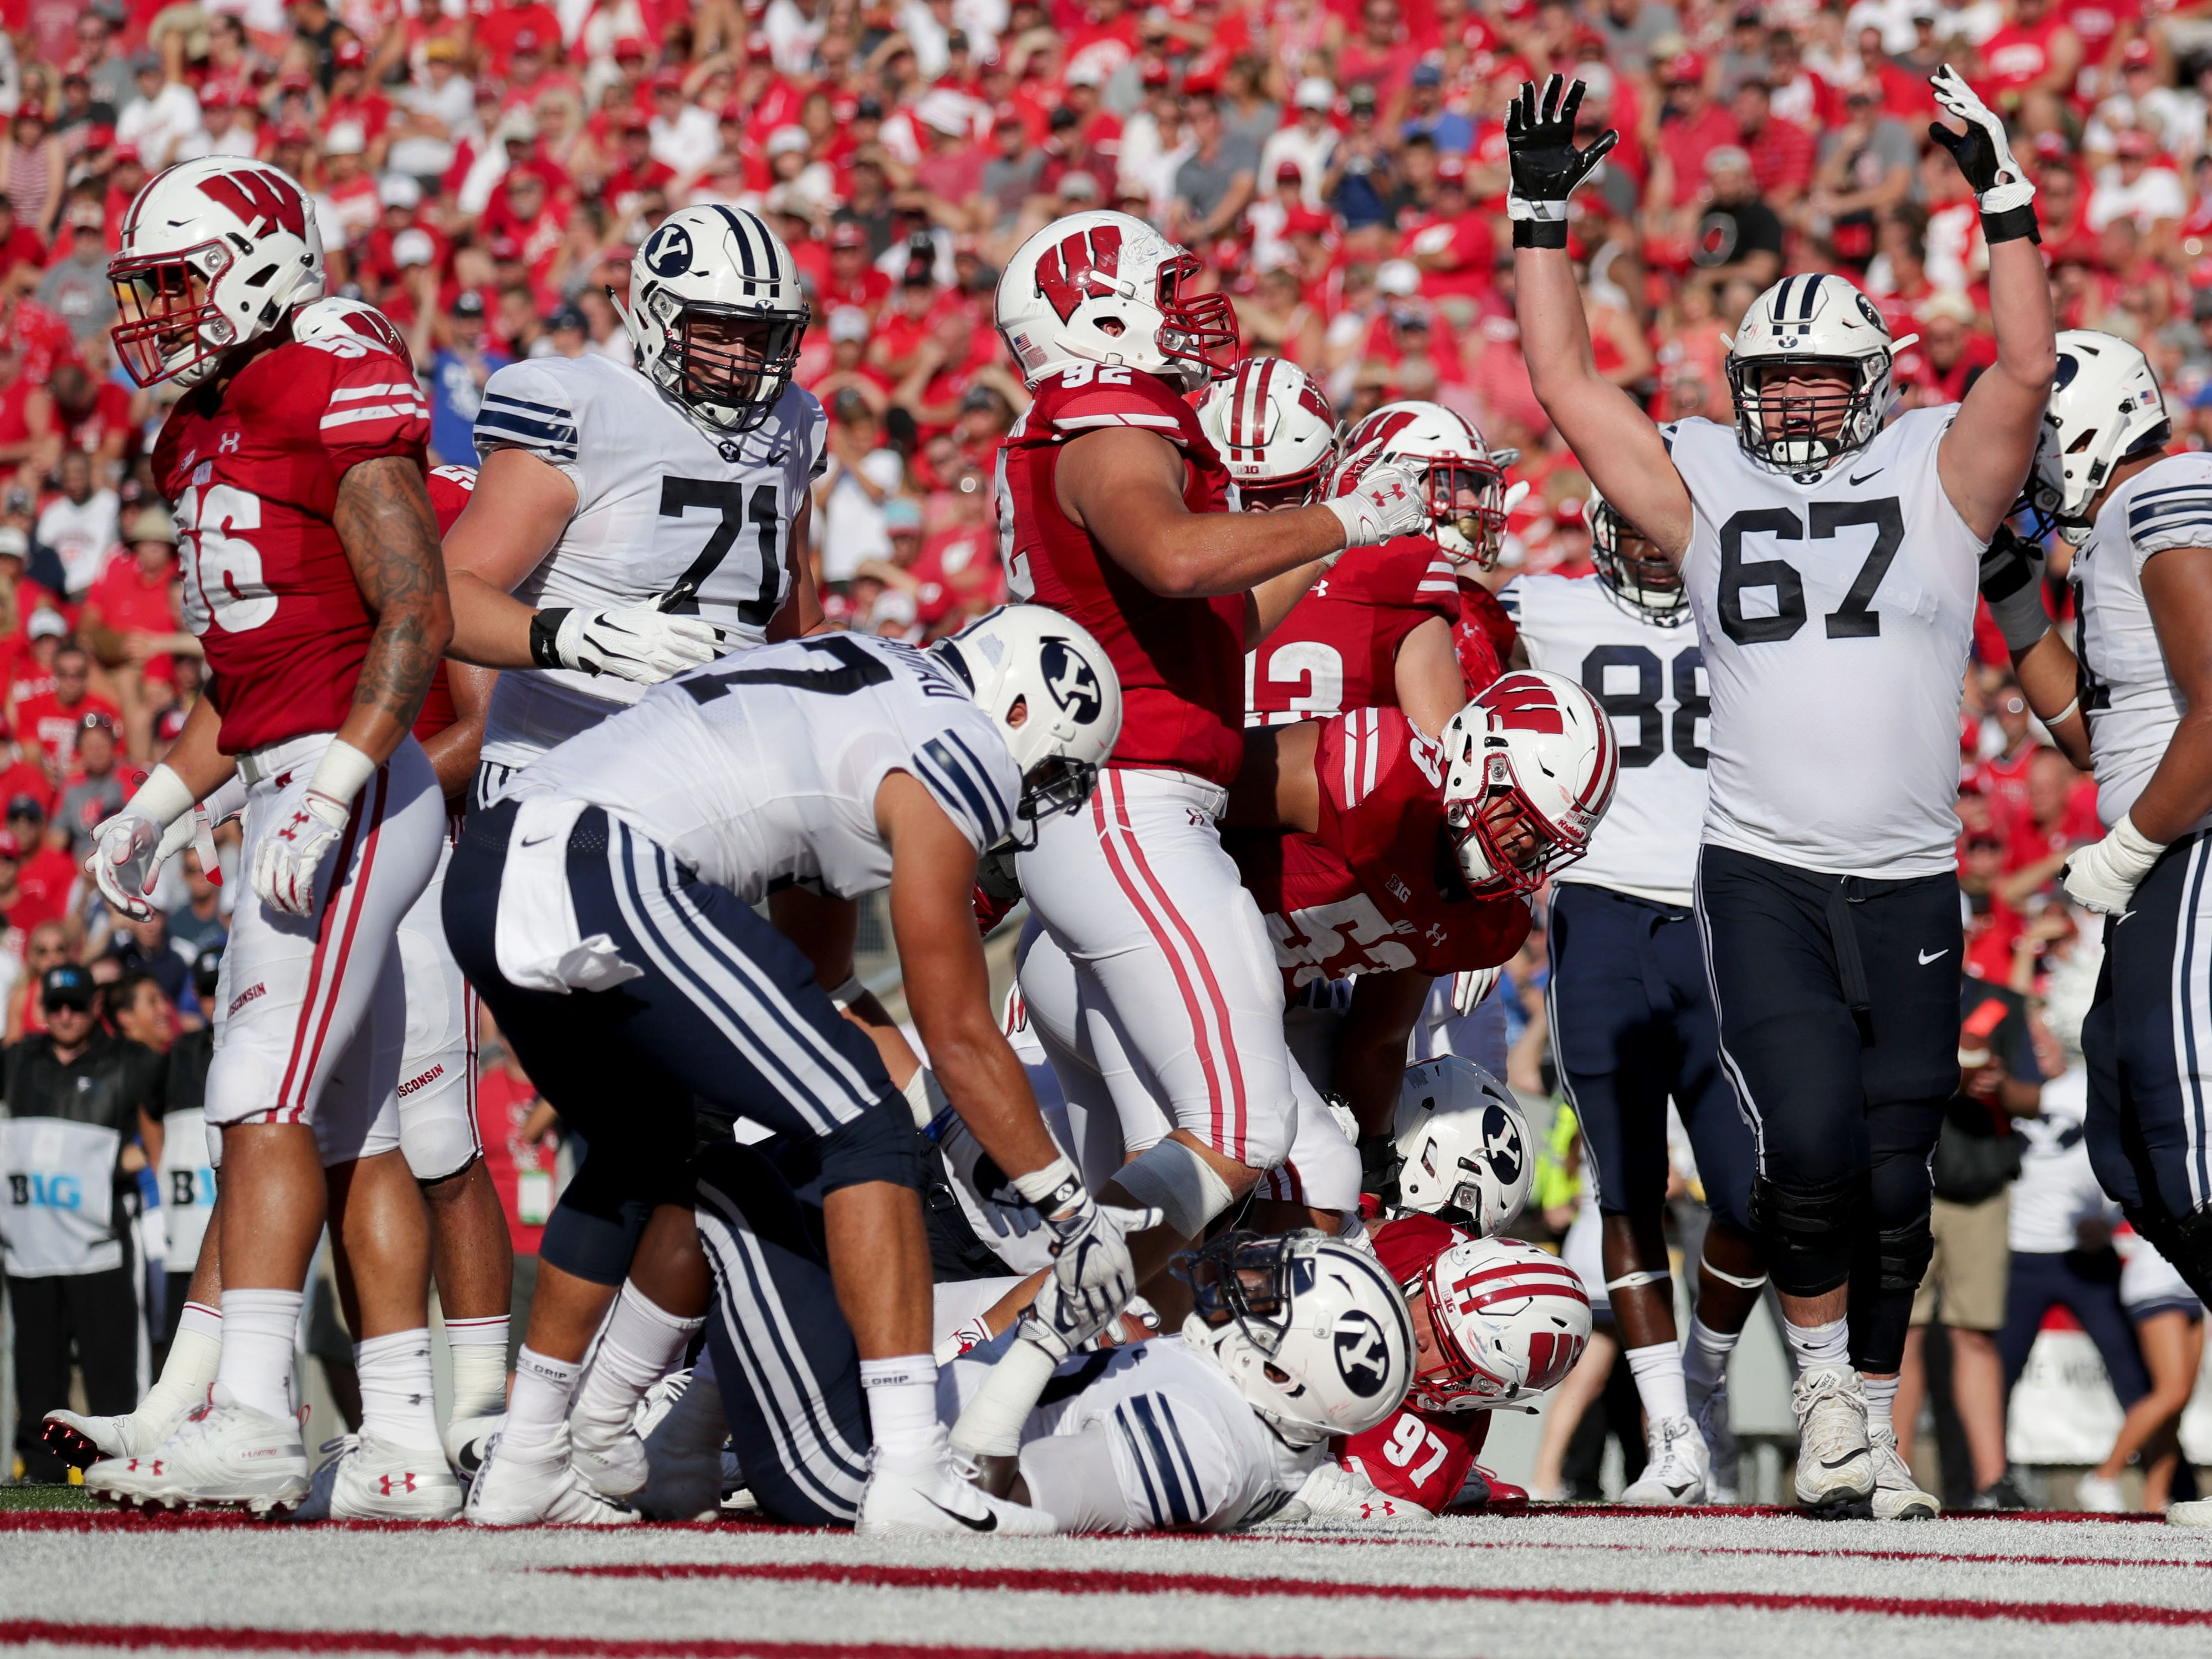 Brigham Young offensive lineman Brady Christensen signals touchdown after Squally Canada's 2-yard touchdown run in the third quarter.